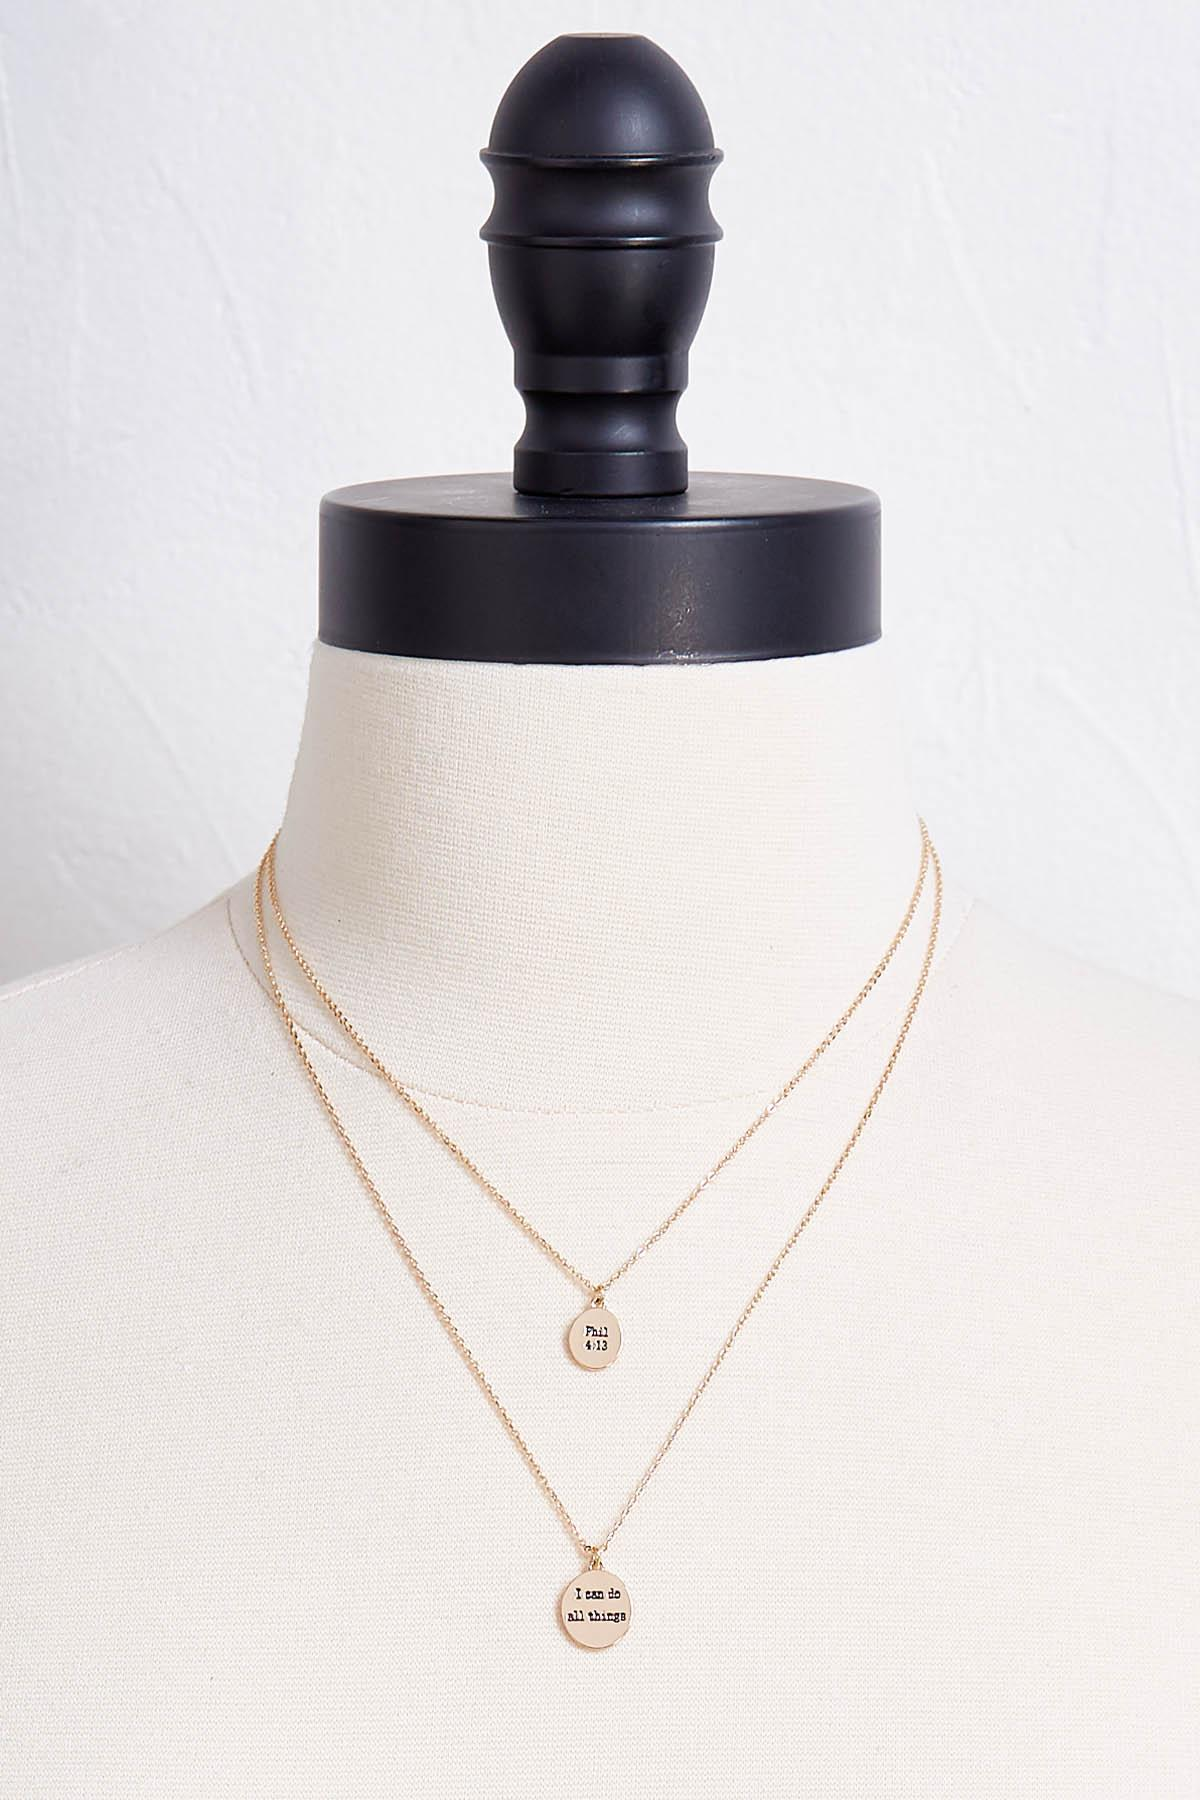 Inspirational Layered Disk Necklace